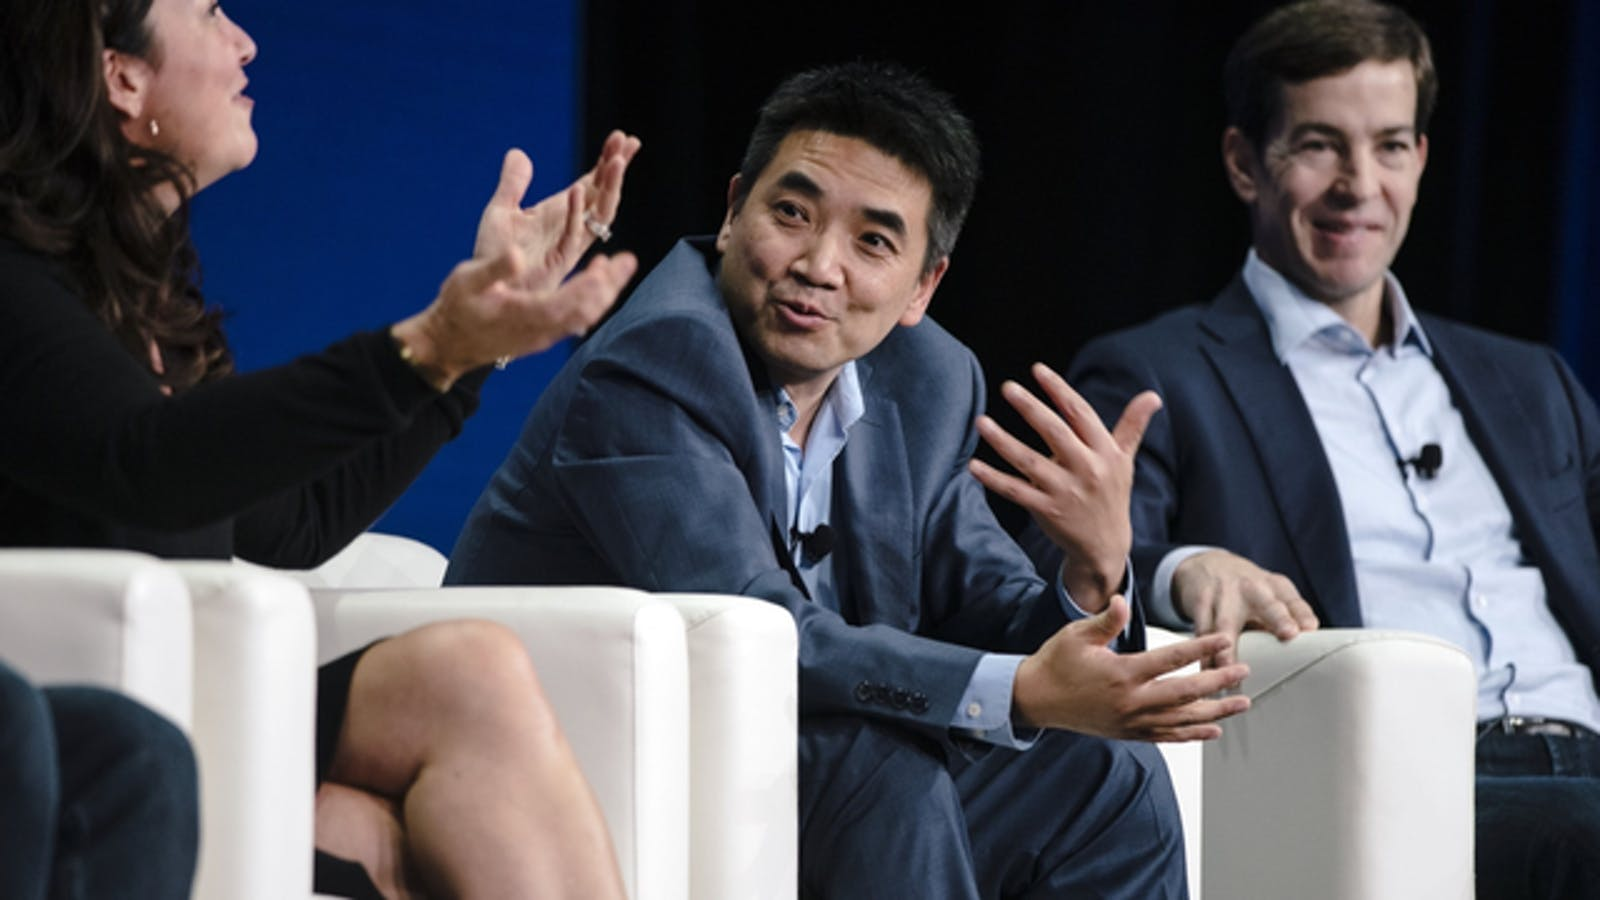 Zoom CEO Eric Yuan, center, at a conference last year. Photo by Bloomberg